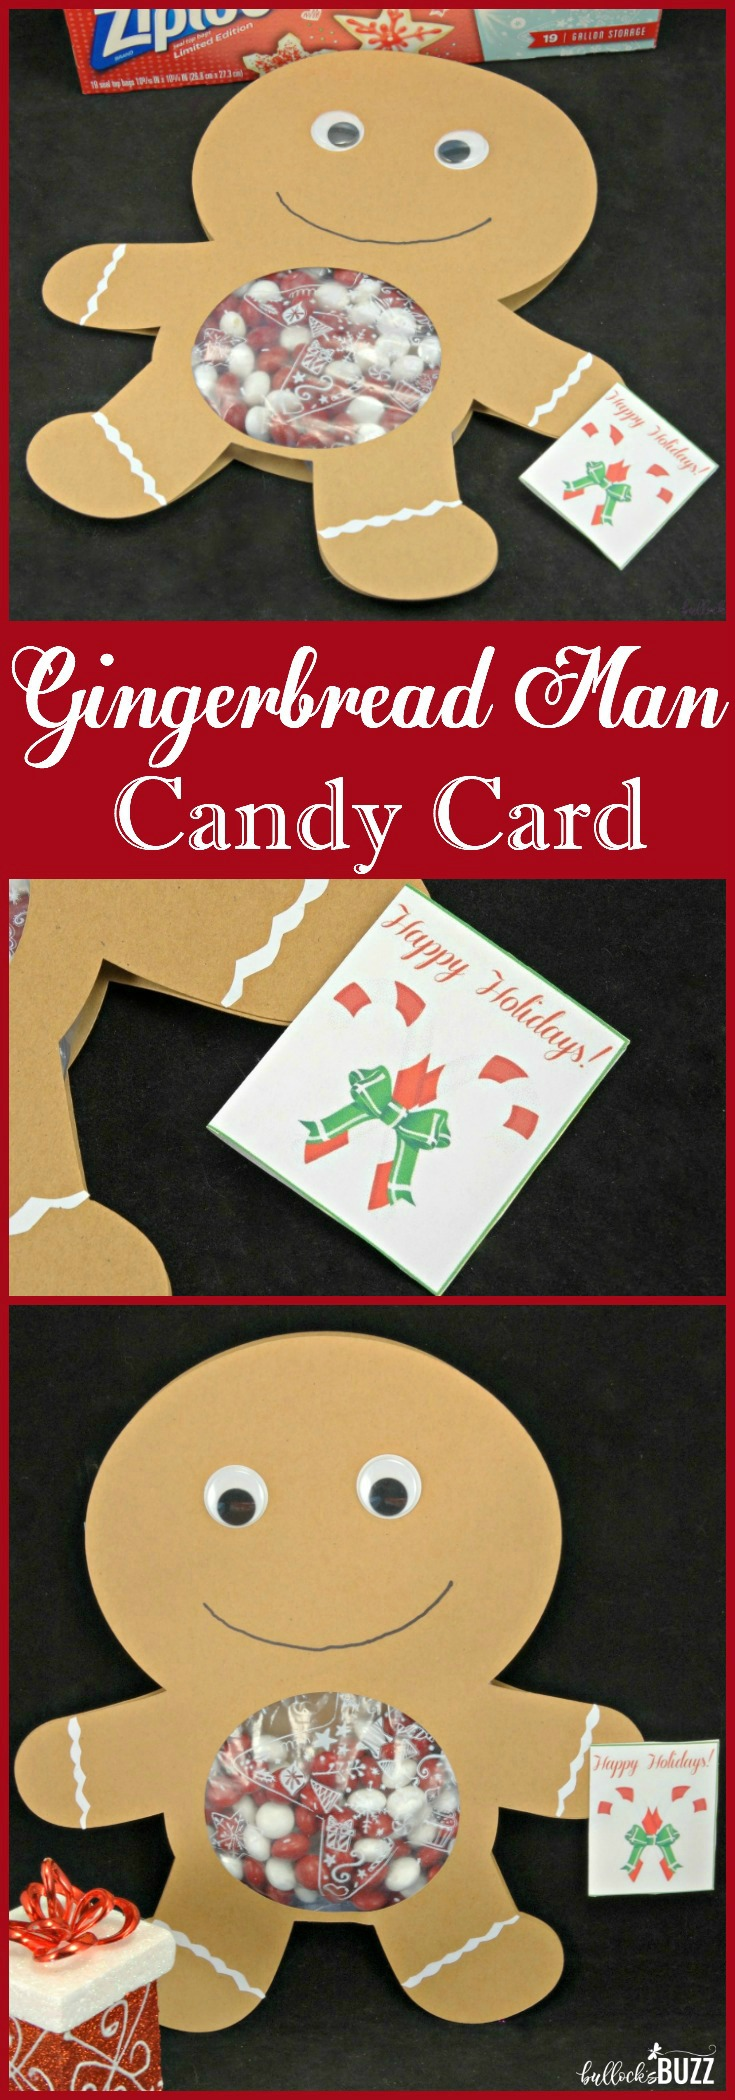 This gingerbread man candy card is a sweet and adorable way to spread some holiday cheer to friends and family